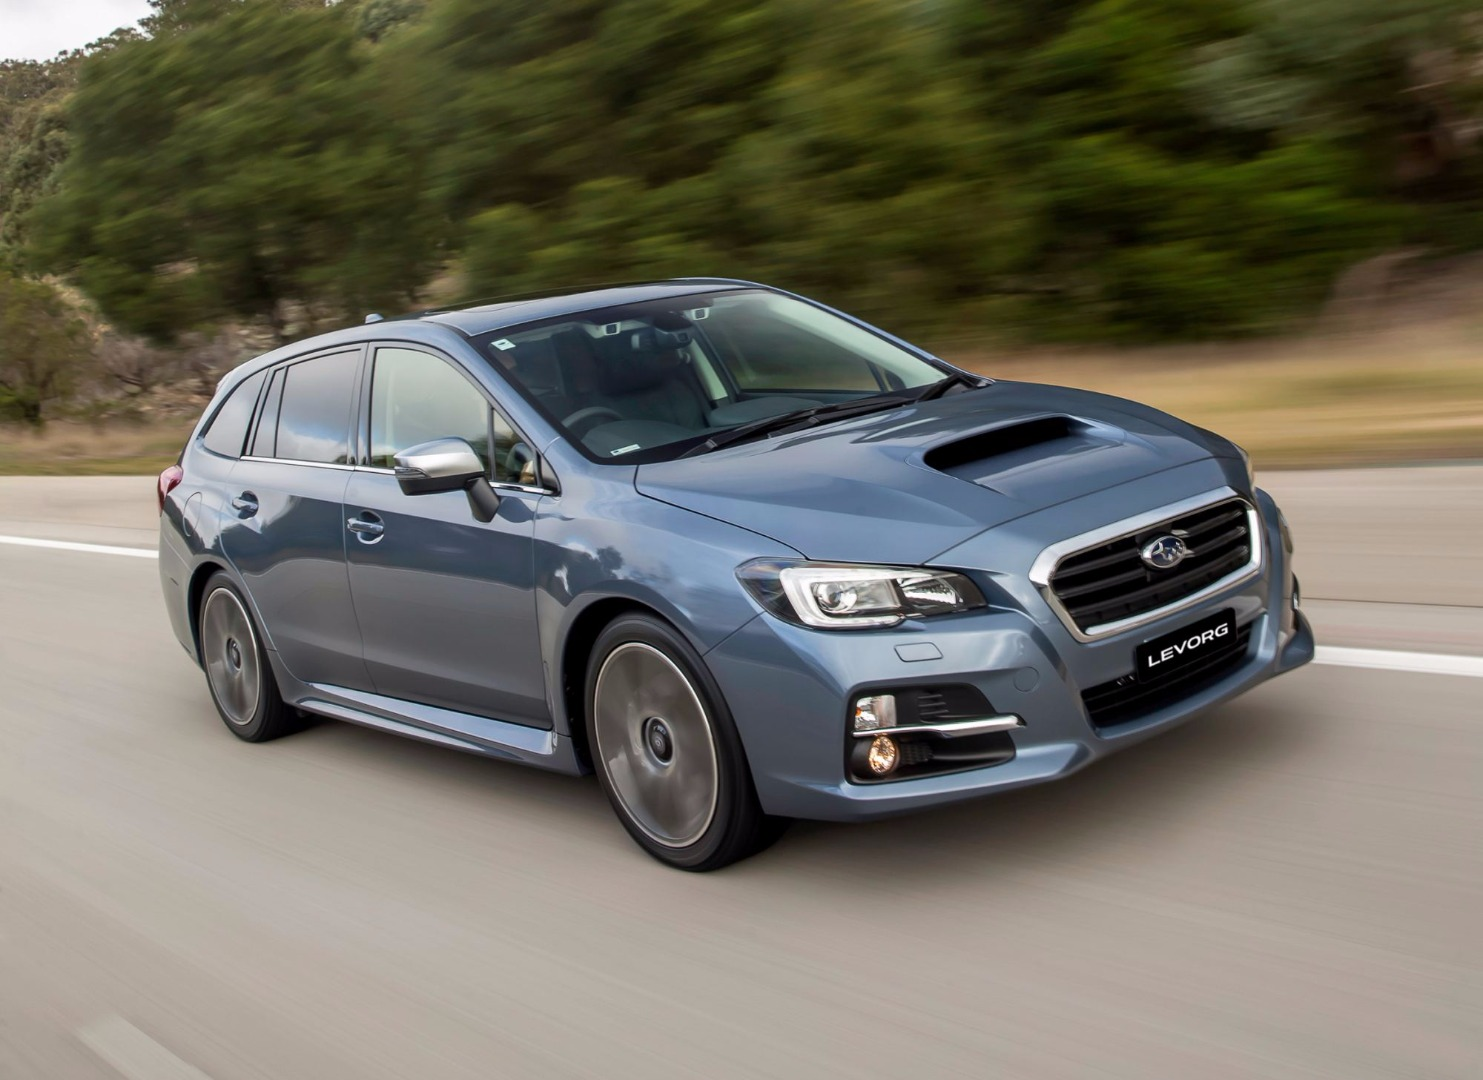 Porsche Gt >> Review - 2017 Subaru Levorg - Review